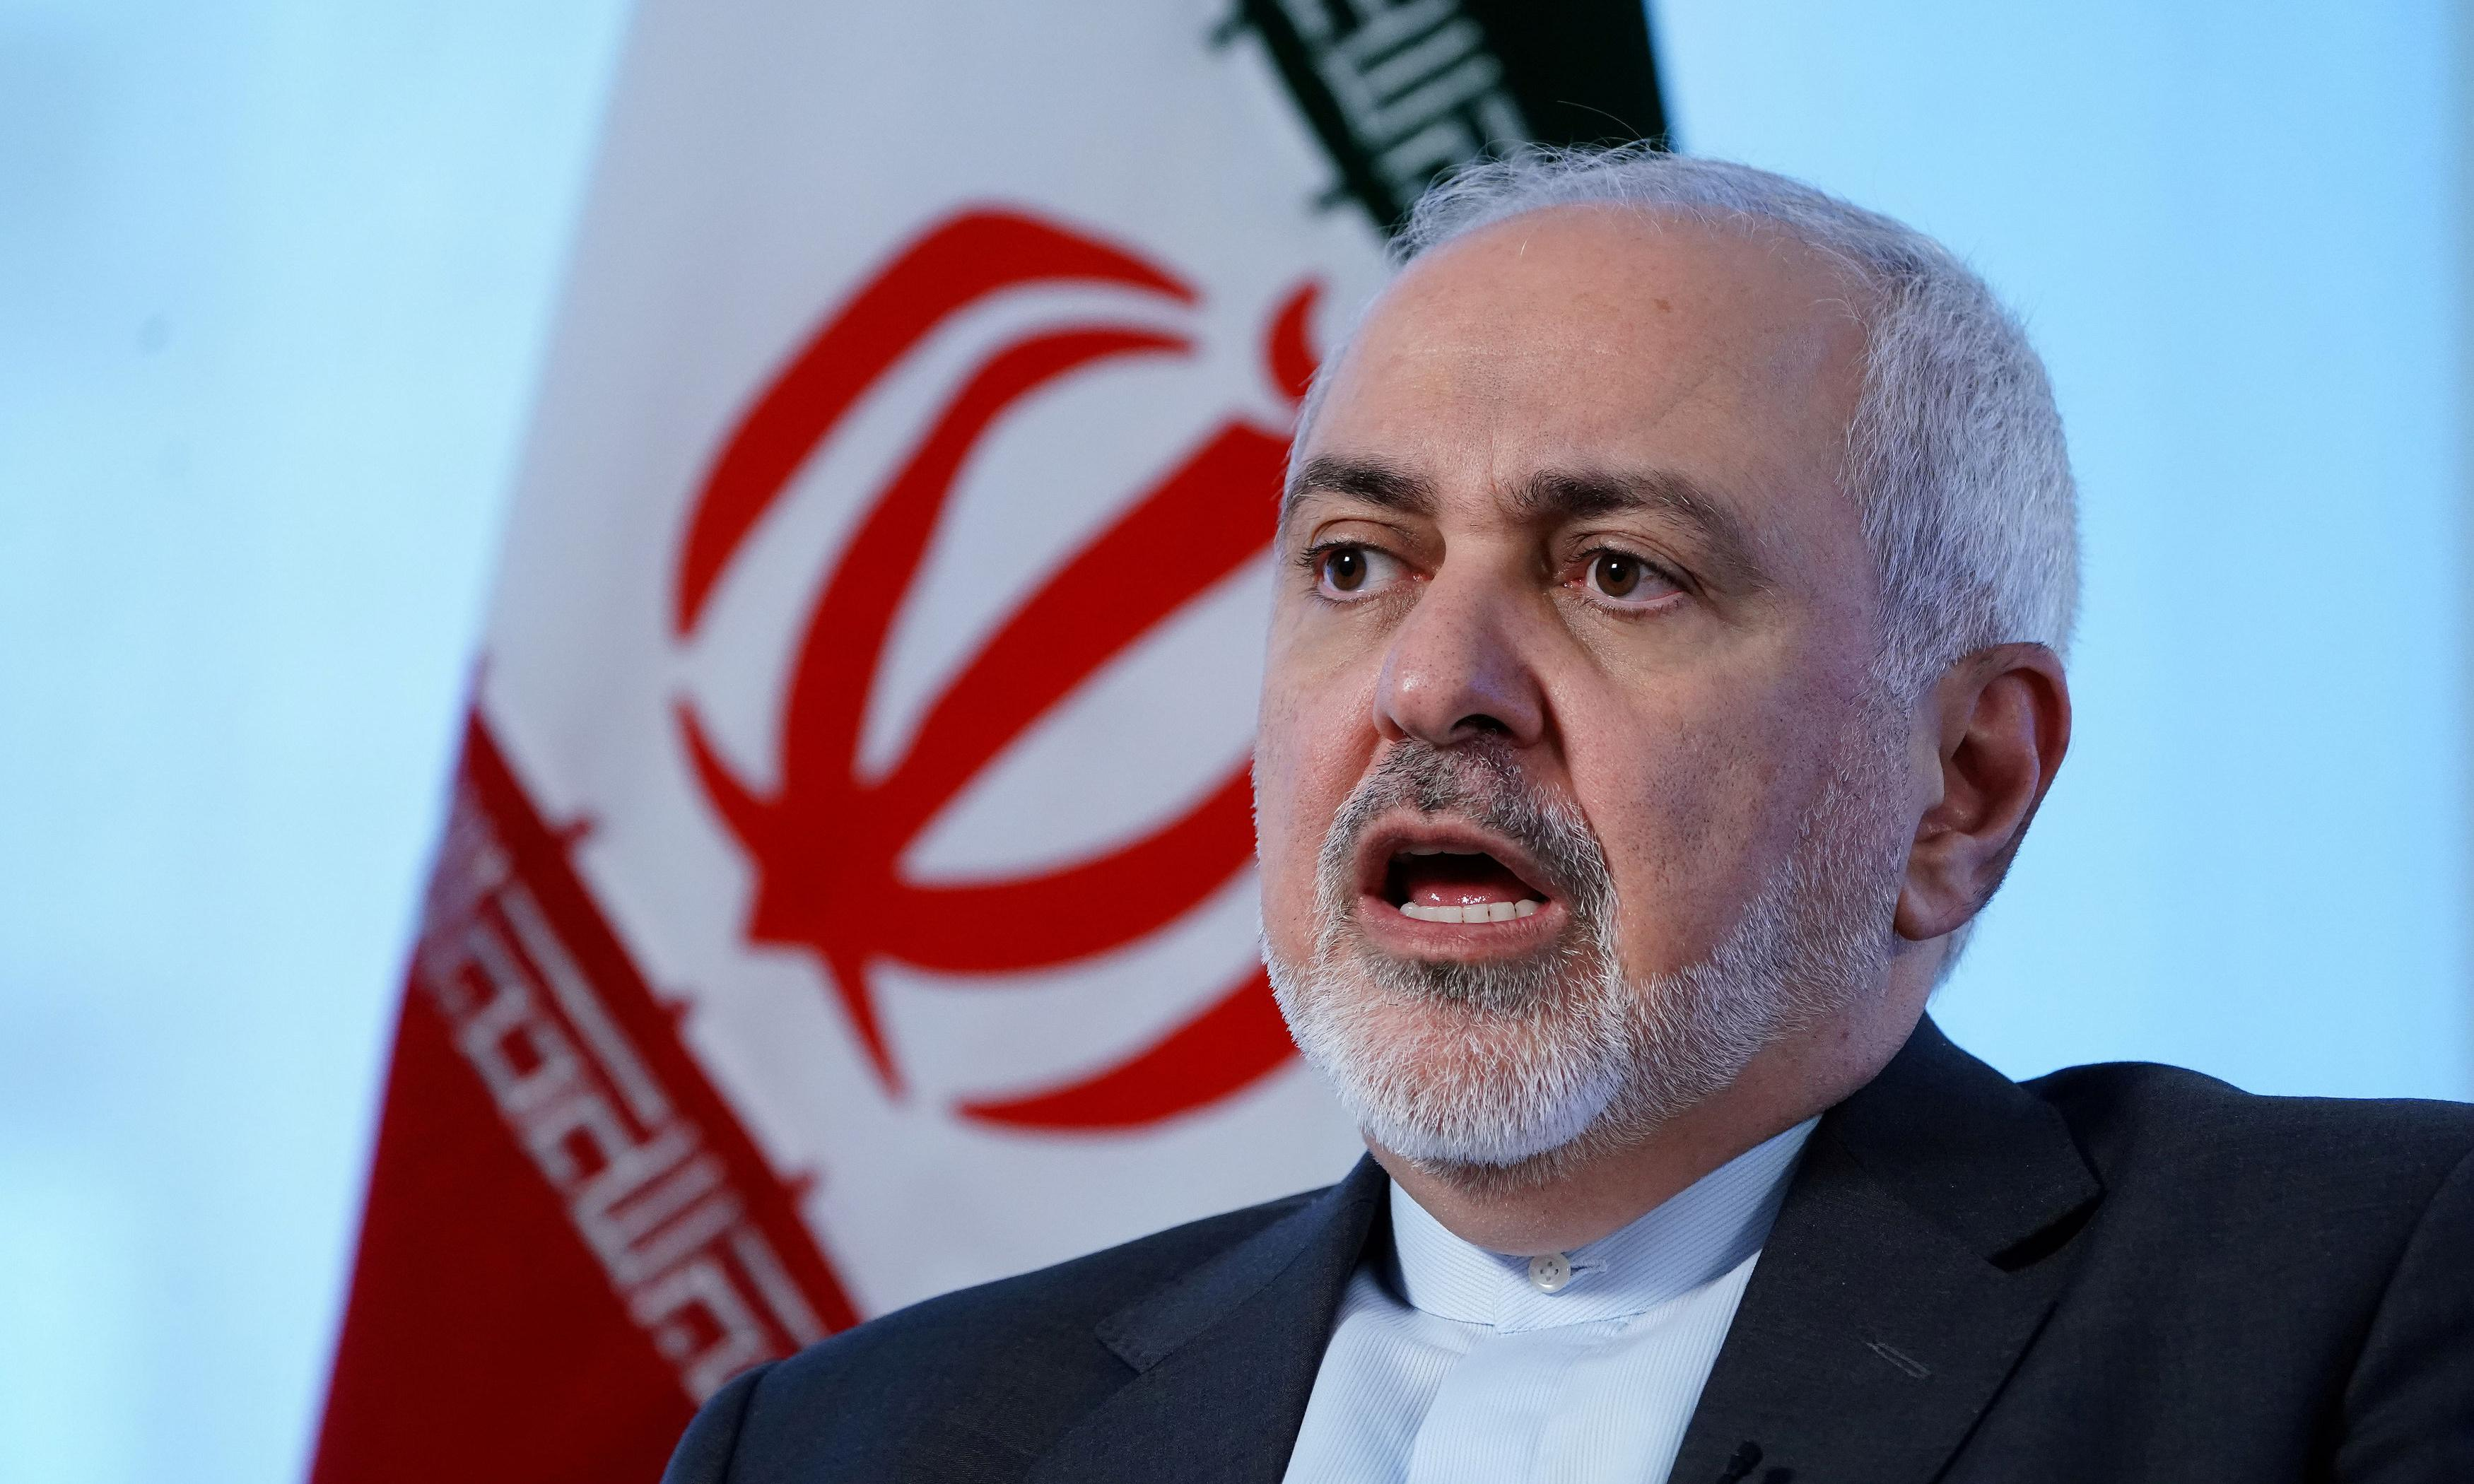 Iran says it will never build a nuclear weapon